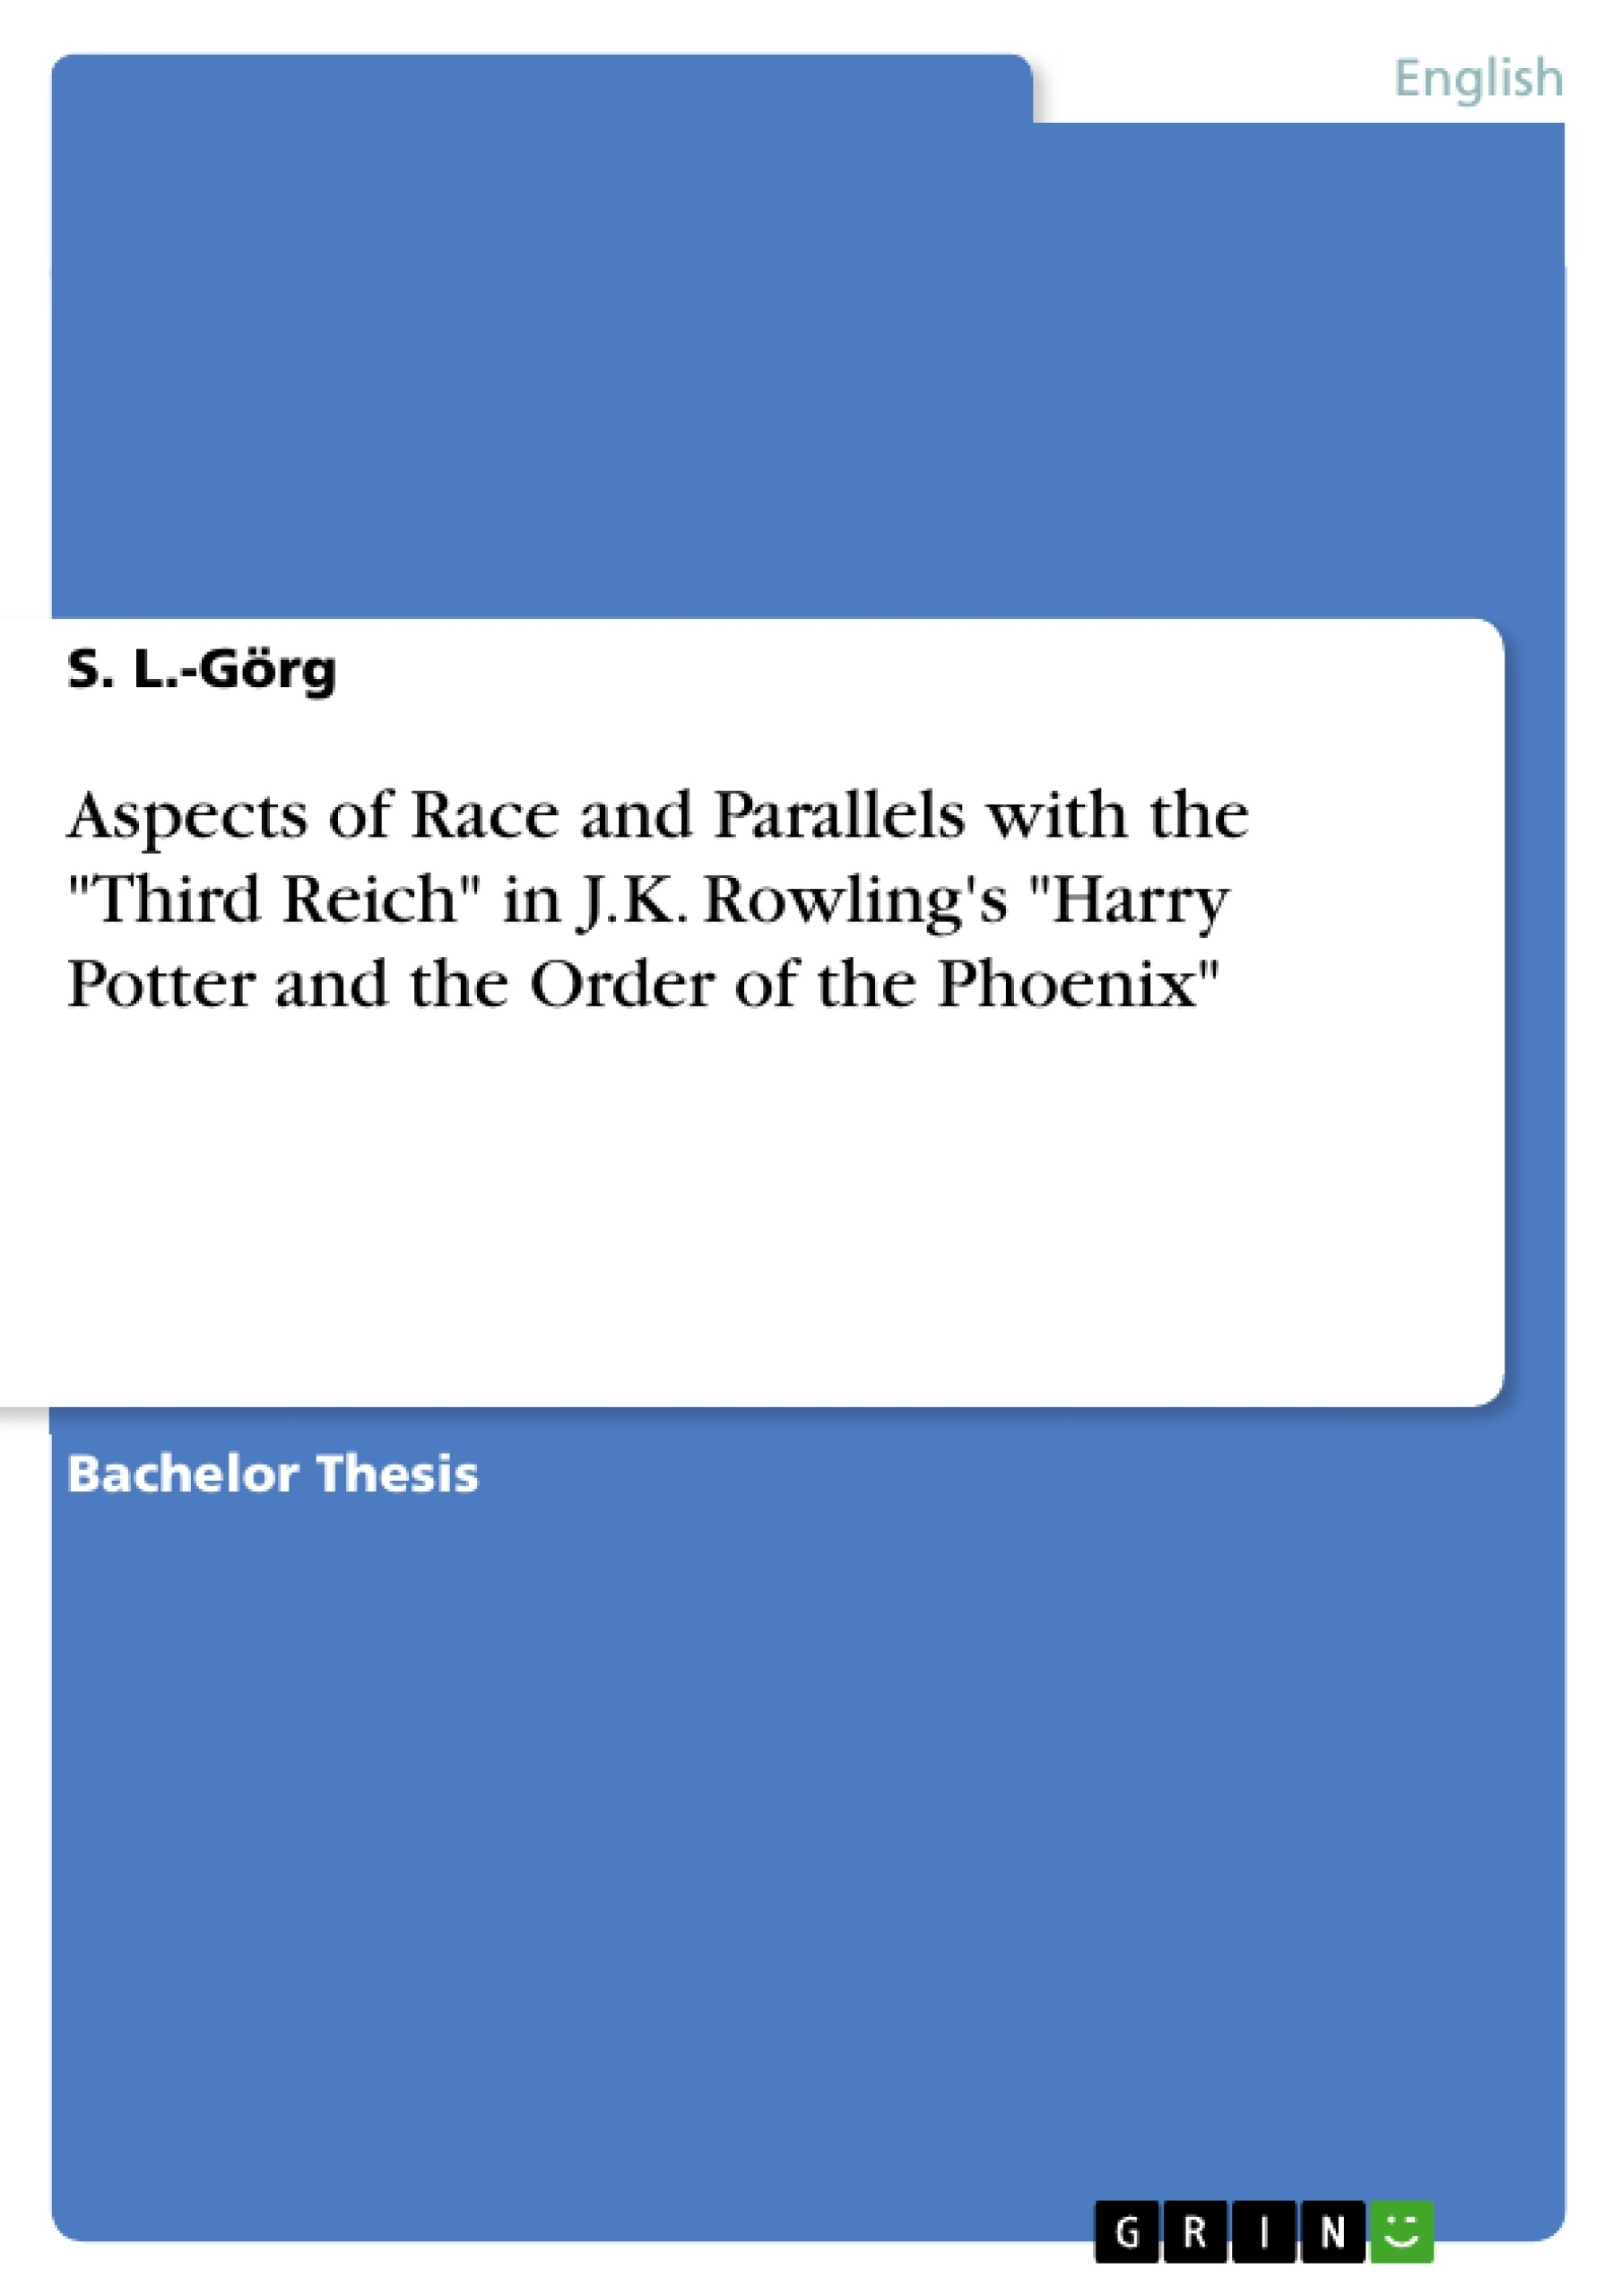 """Title: Aspects of Race and Parallels with the """"Third Reich"""" in J.K. Rowling's """"Harry Potter and the Order of the Phoenix"""""""